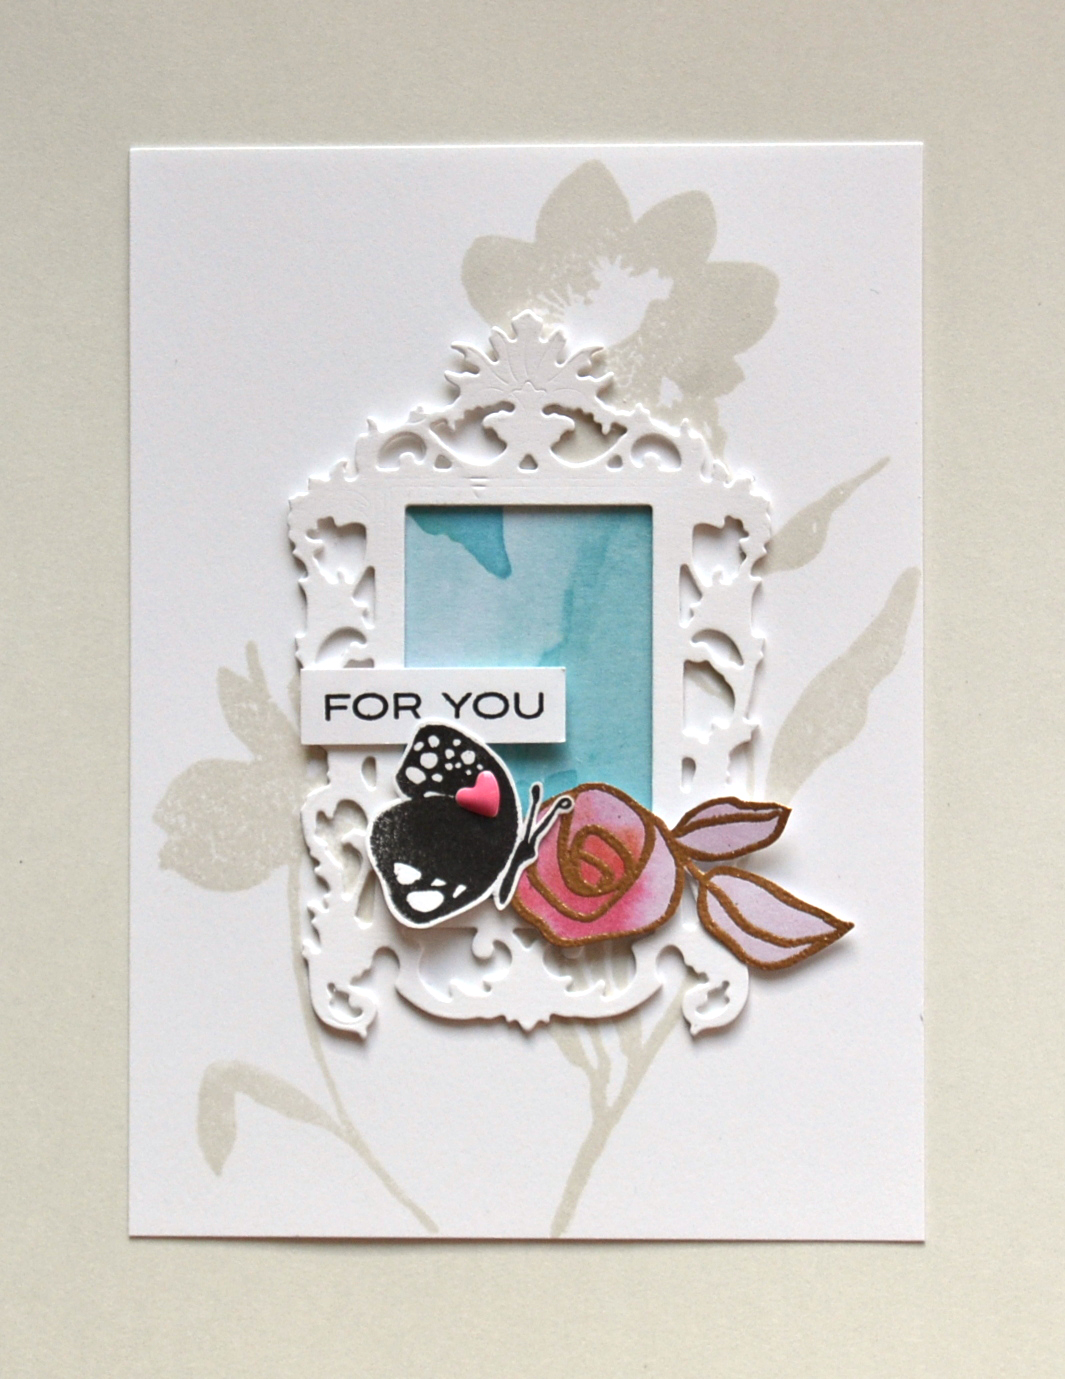 Stamps, Paper and Glitter Tape! All In The New Day Card Kit ...